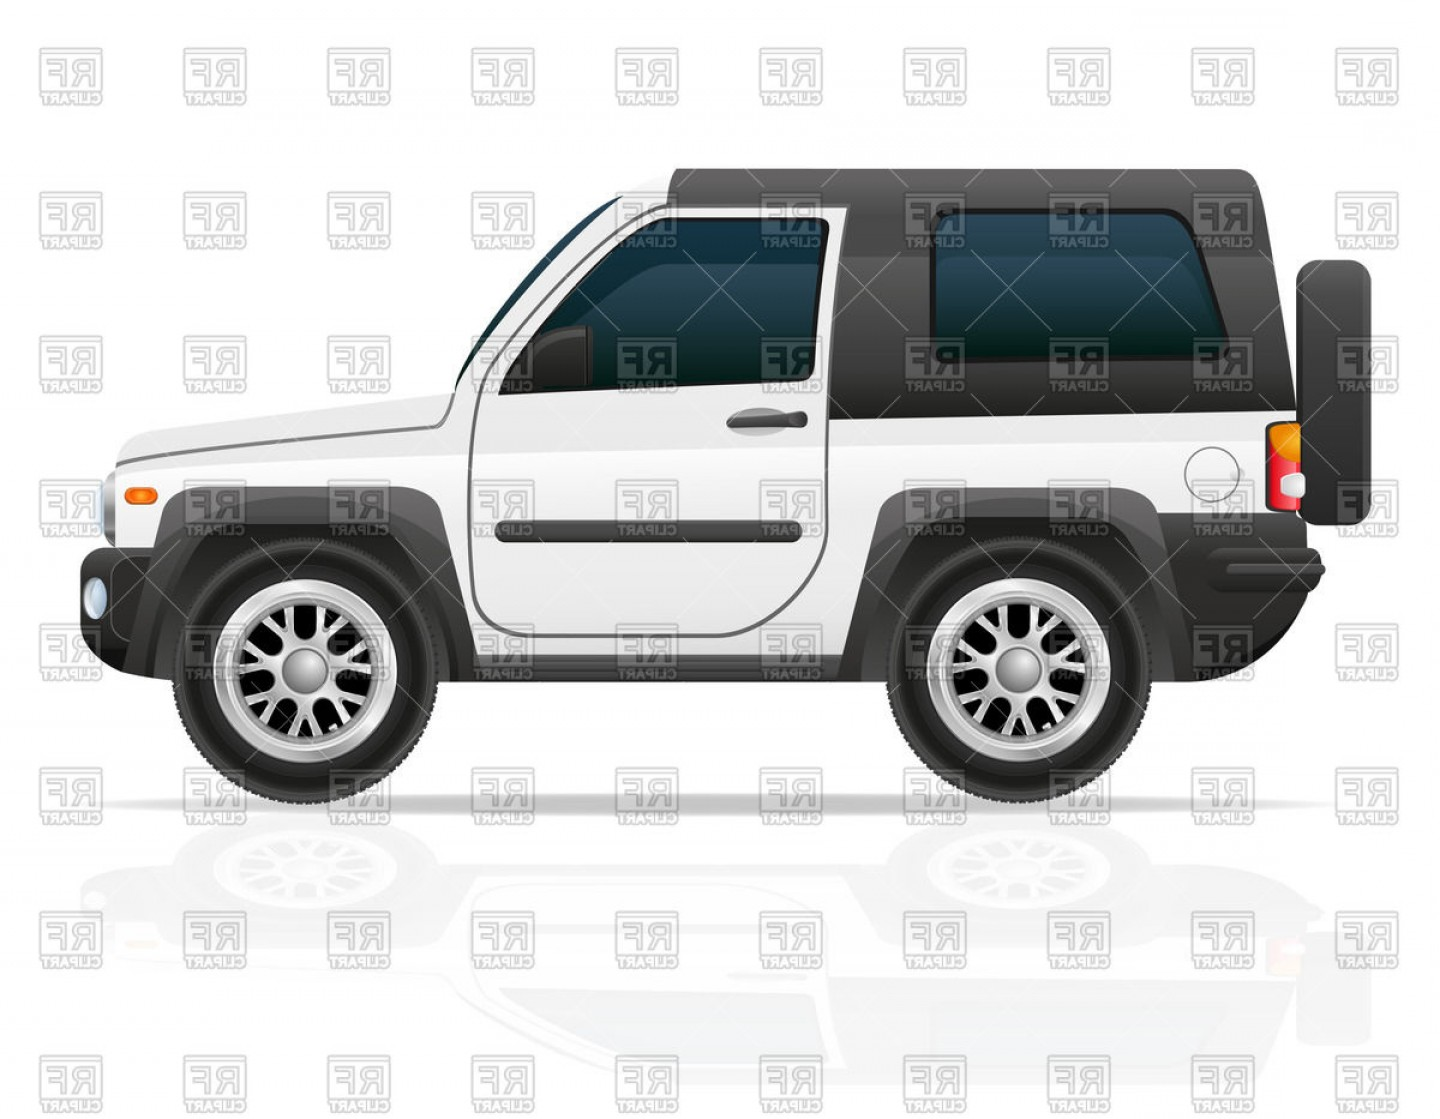 Off road vehicle clipart banner transparent library Off Road Vehicle X Suv Side View Vector Clipart | SOIDERGI banner transparent library